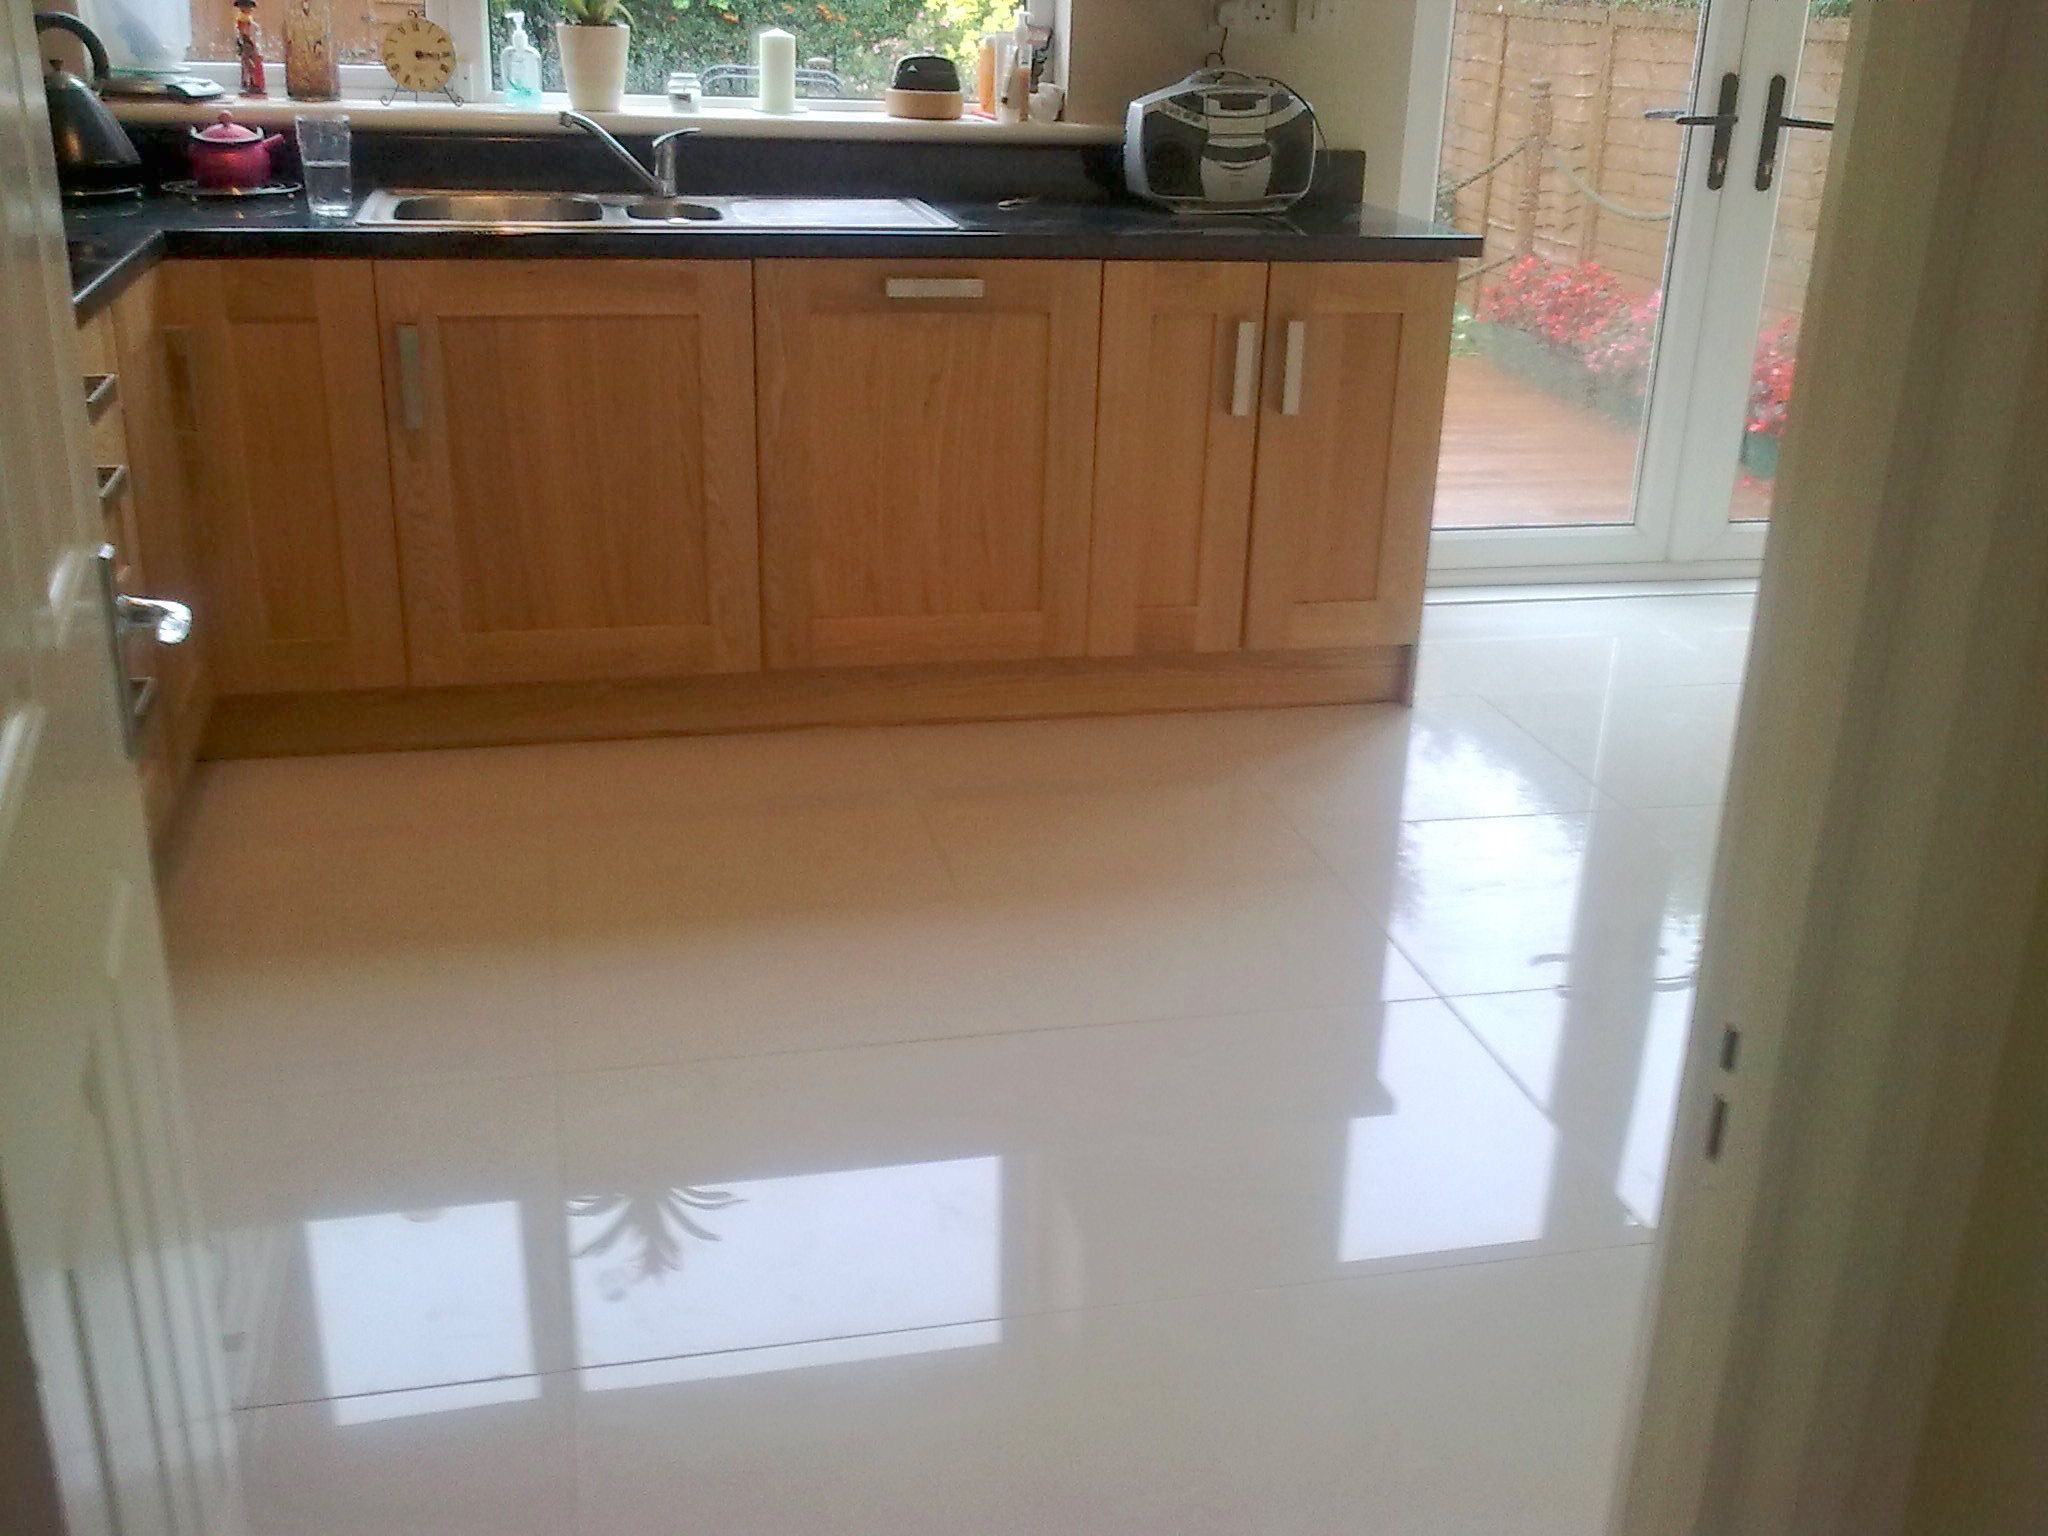 Cream Floor Tiles For Kitchen This Lovely Kitchen Features A Smart And Innovative Storage